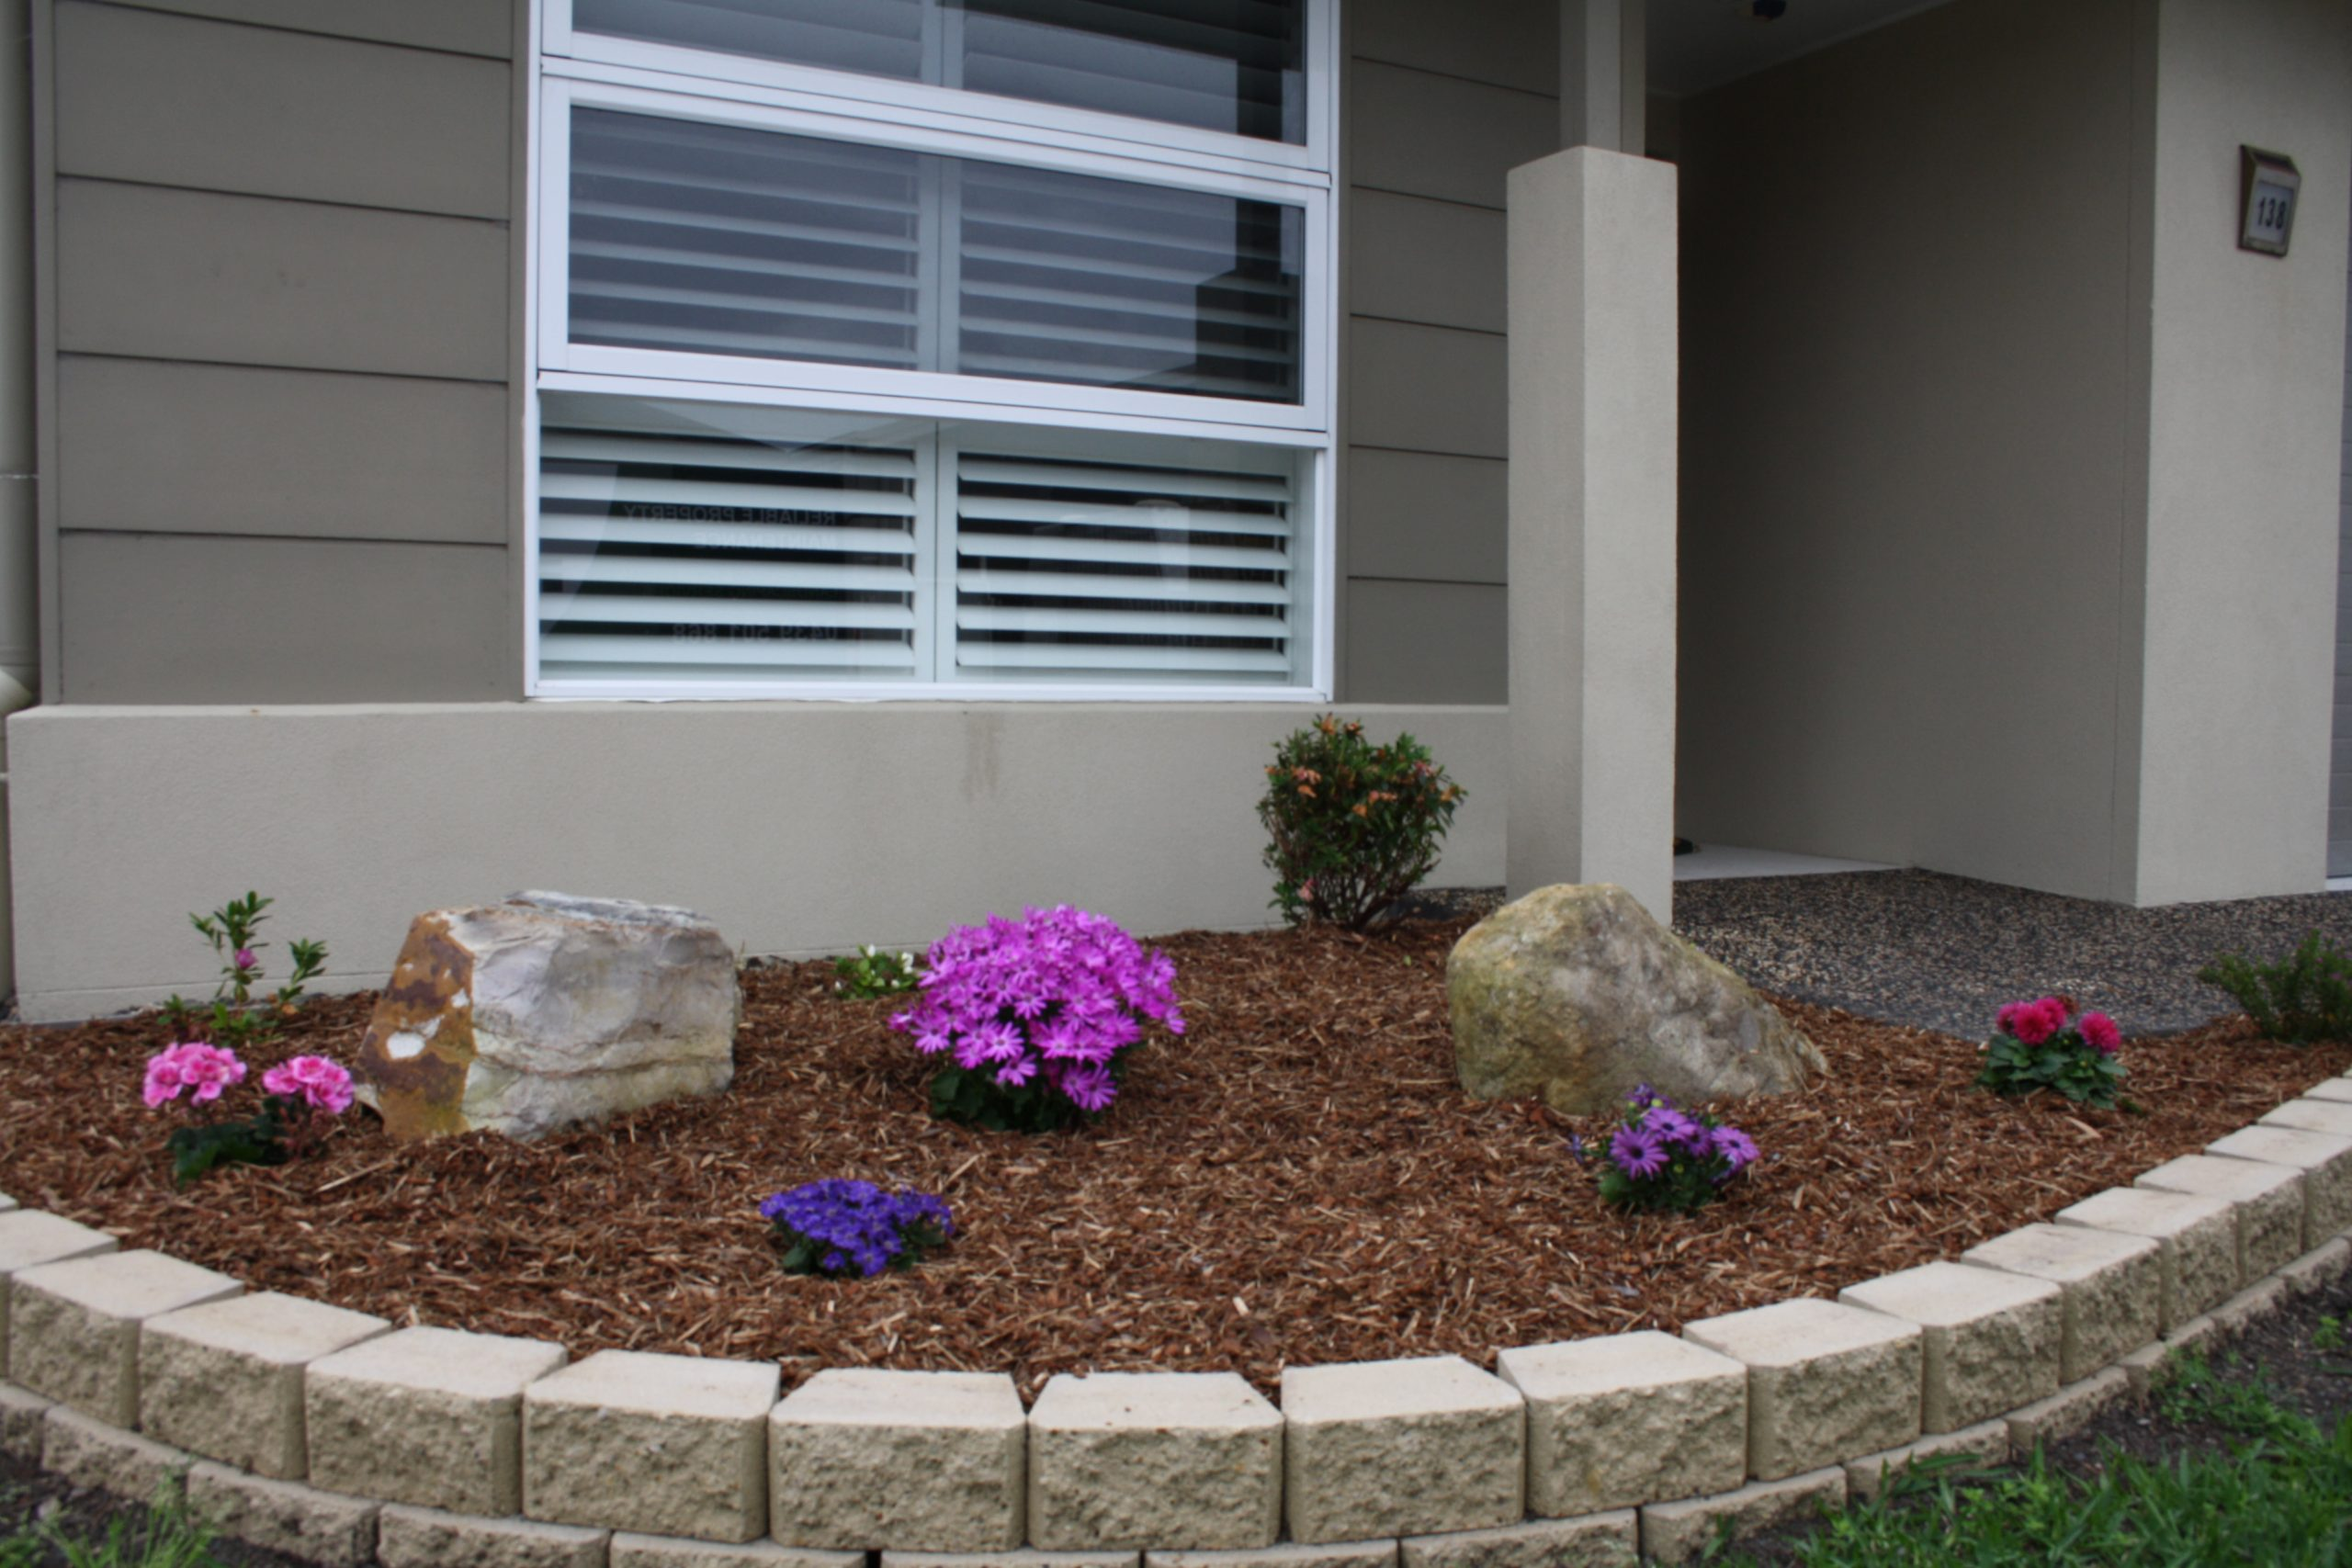 Sandstone Garden Edge with Small Flowers